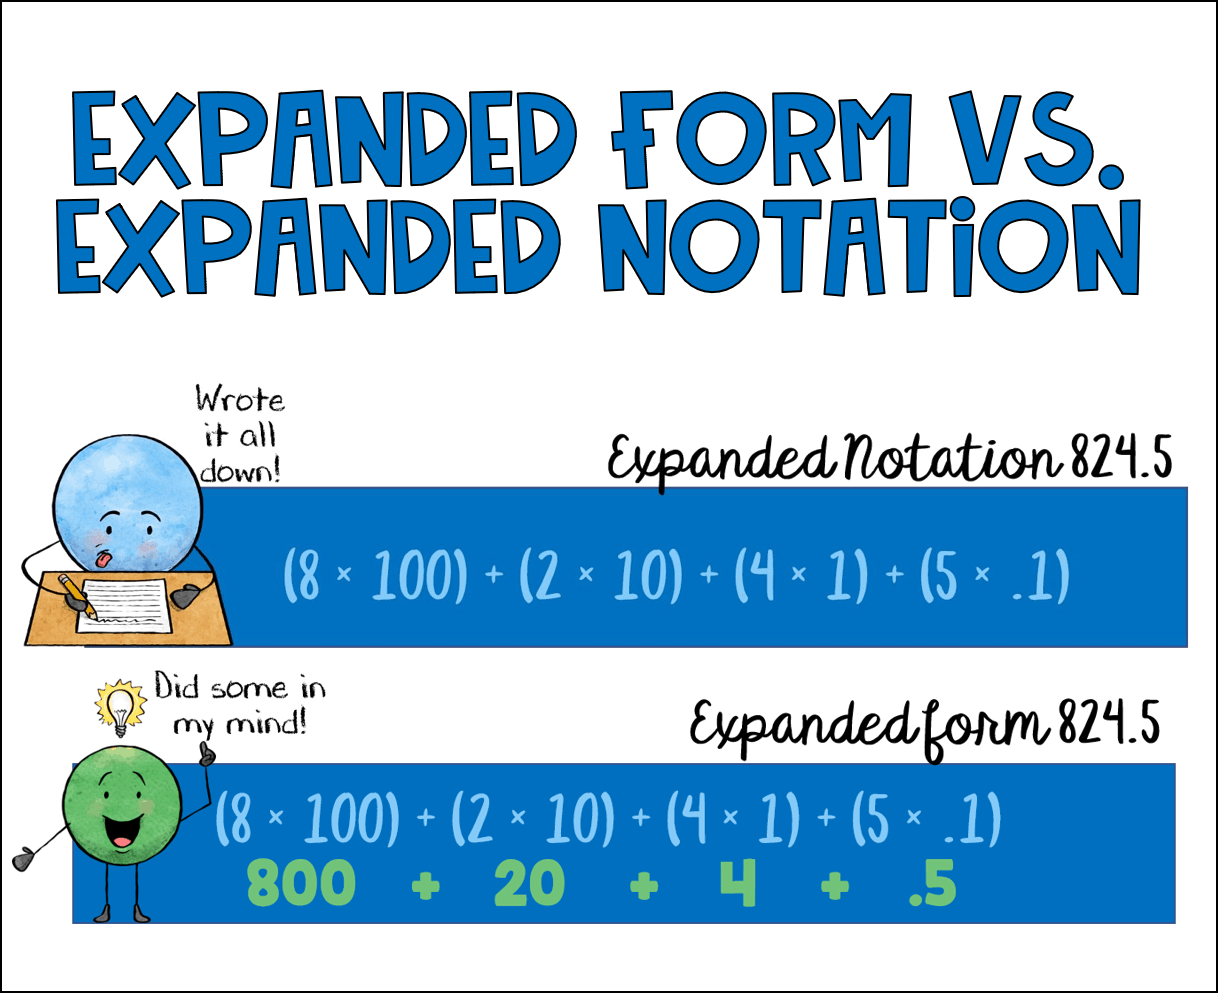 Expanded Notation Vs Expanded Form Cassi Noack